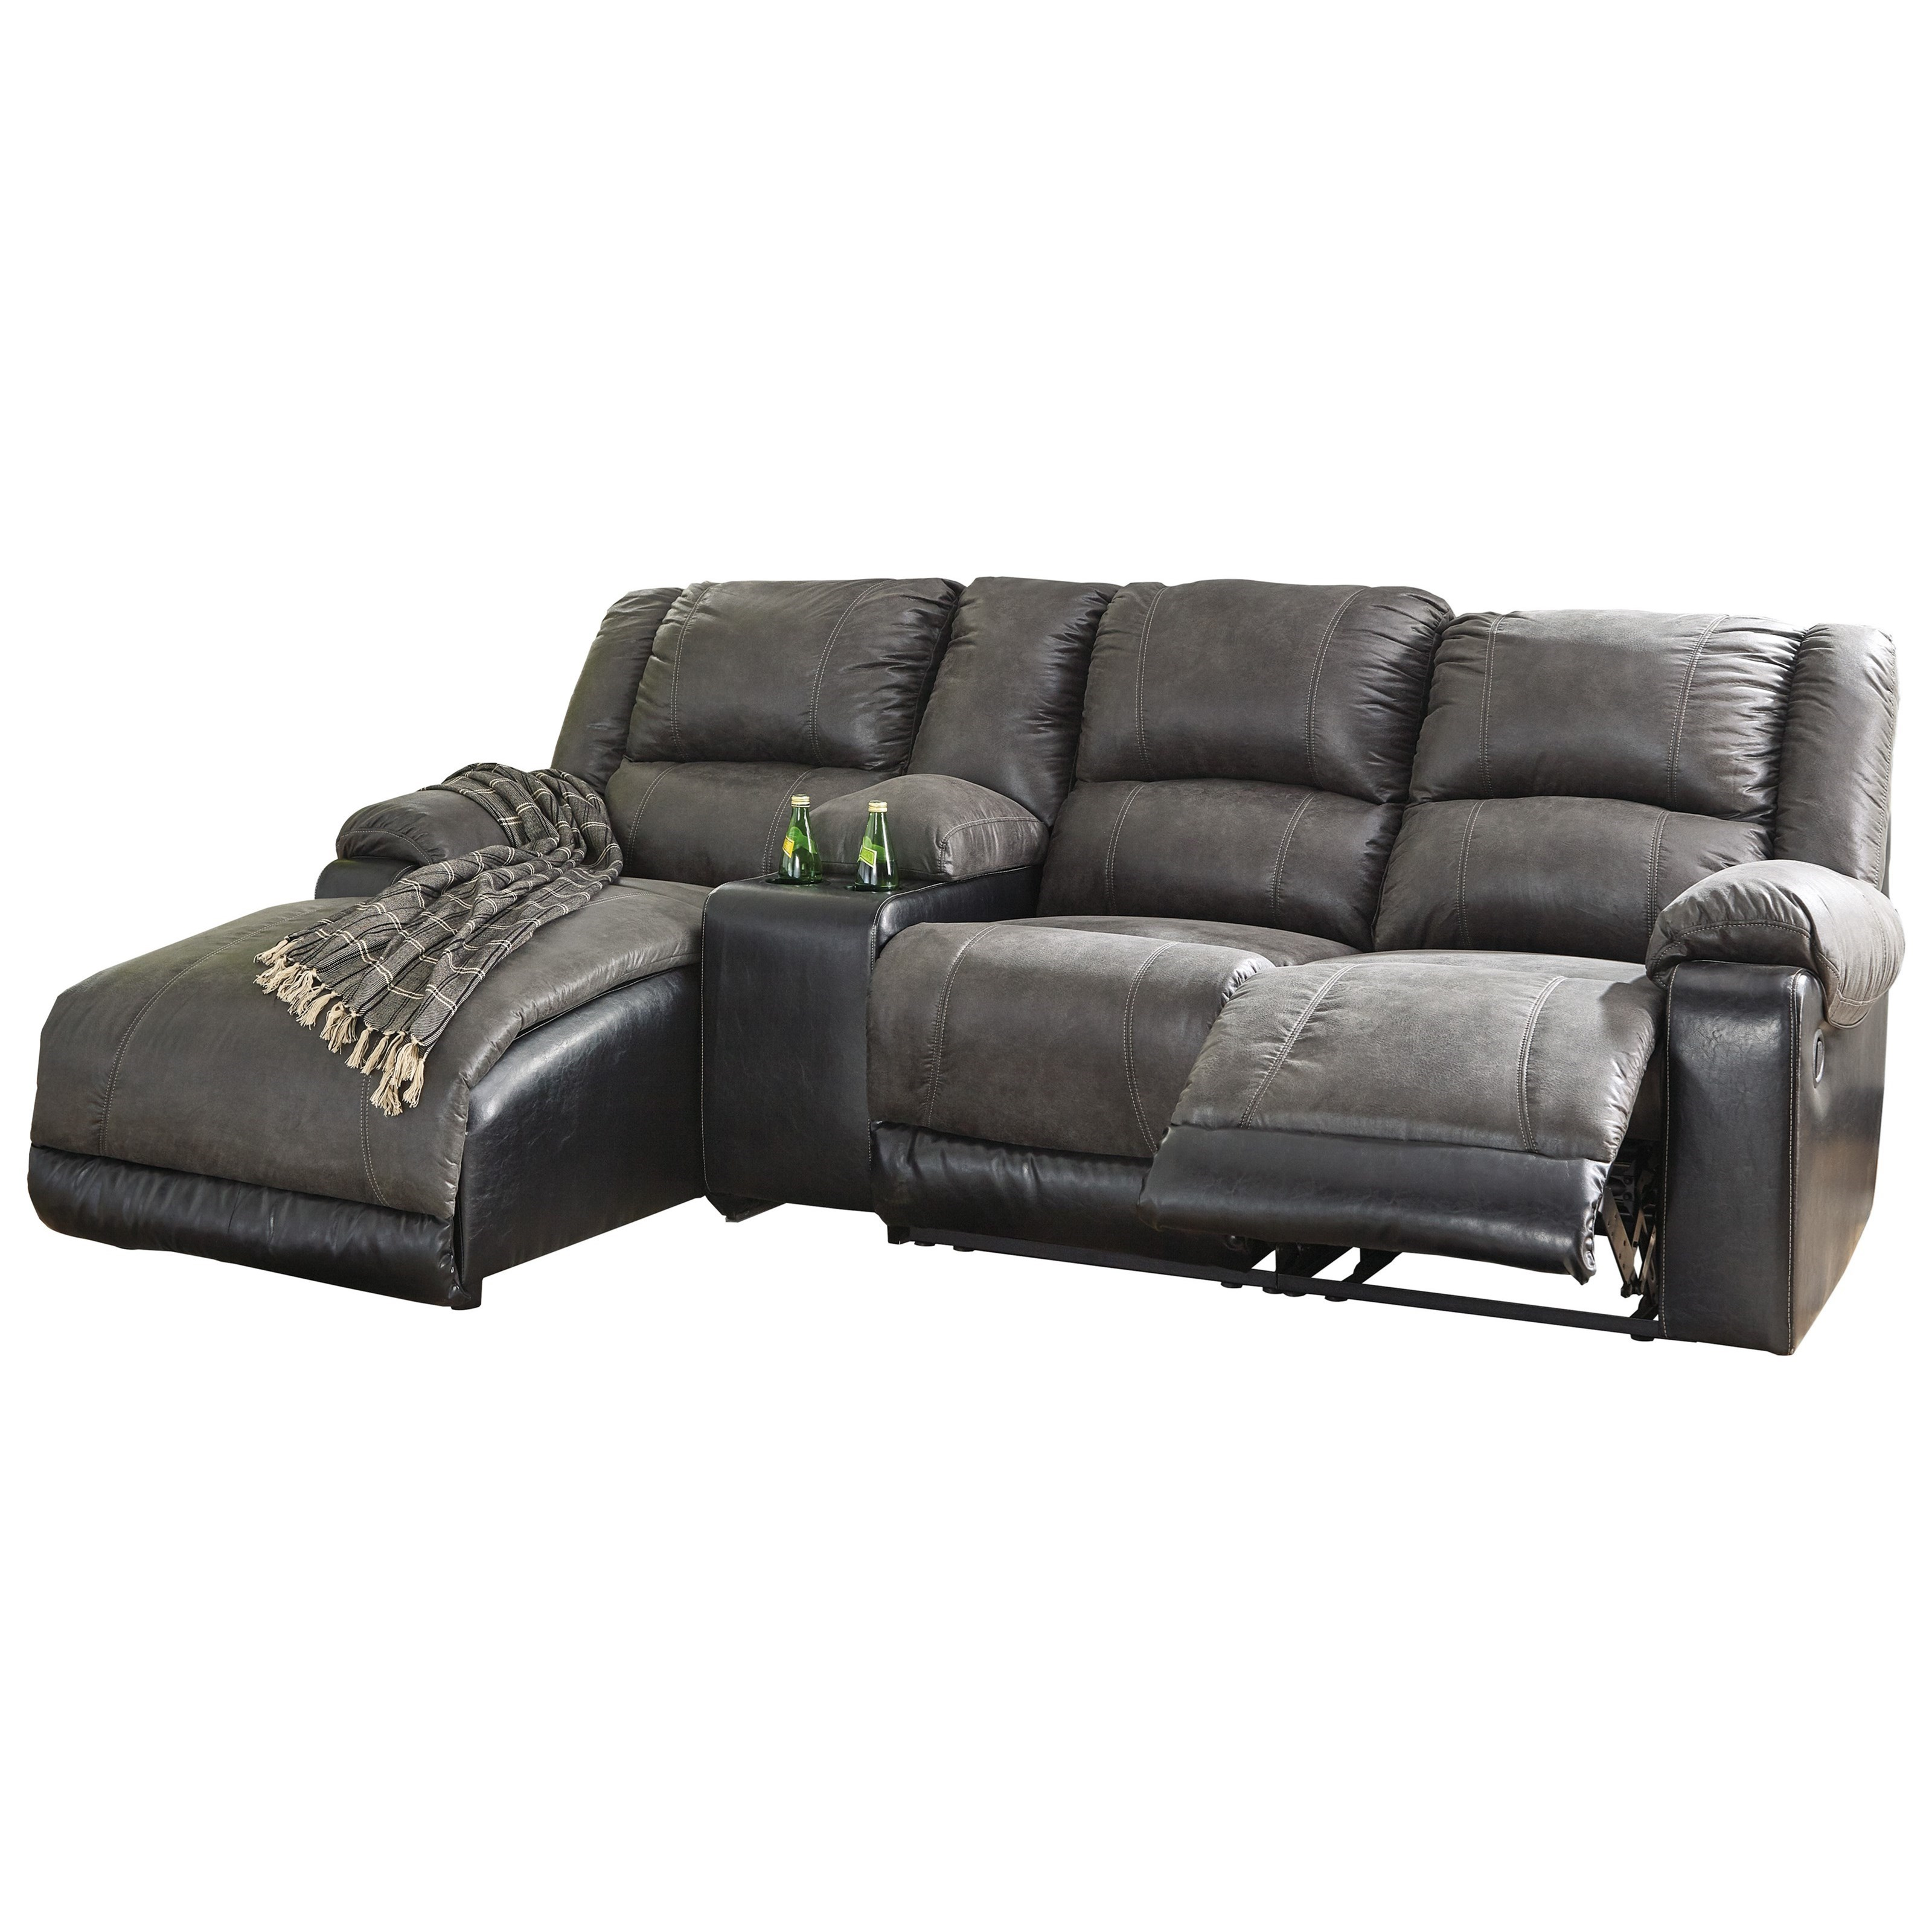 Nantahala Reclining Chaise Sofa by Signature Design by Ashley at Zak's Warehouse Clearance Center